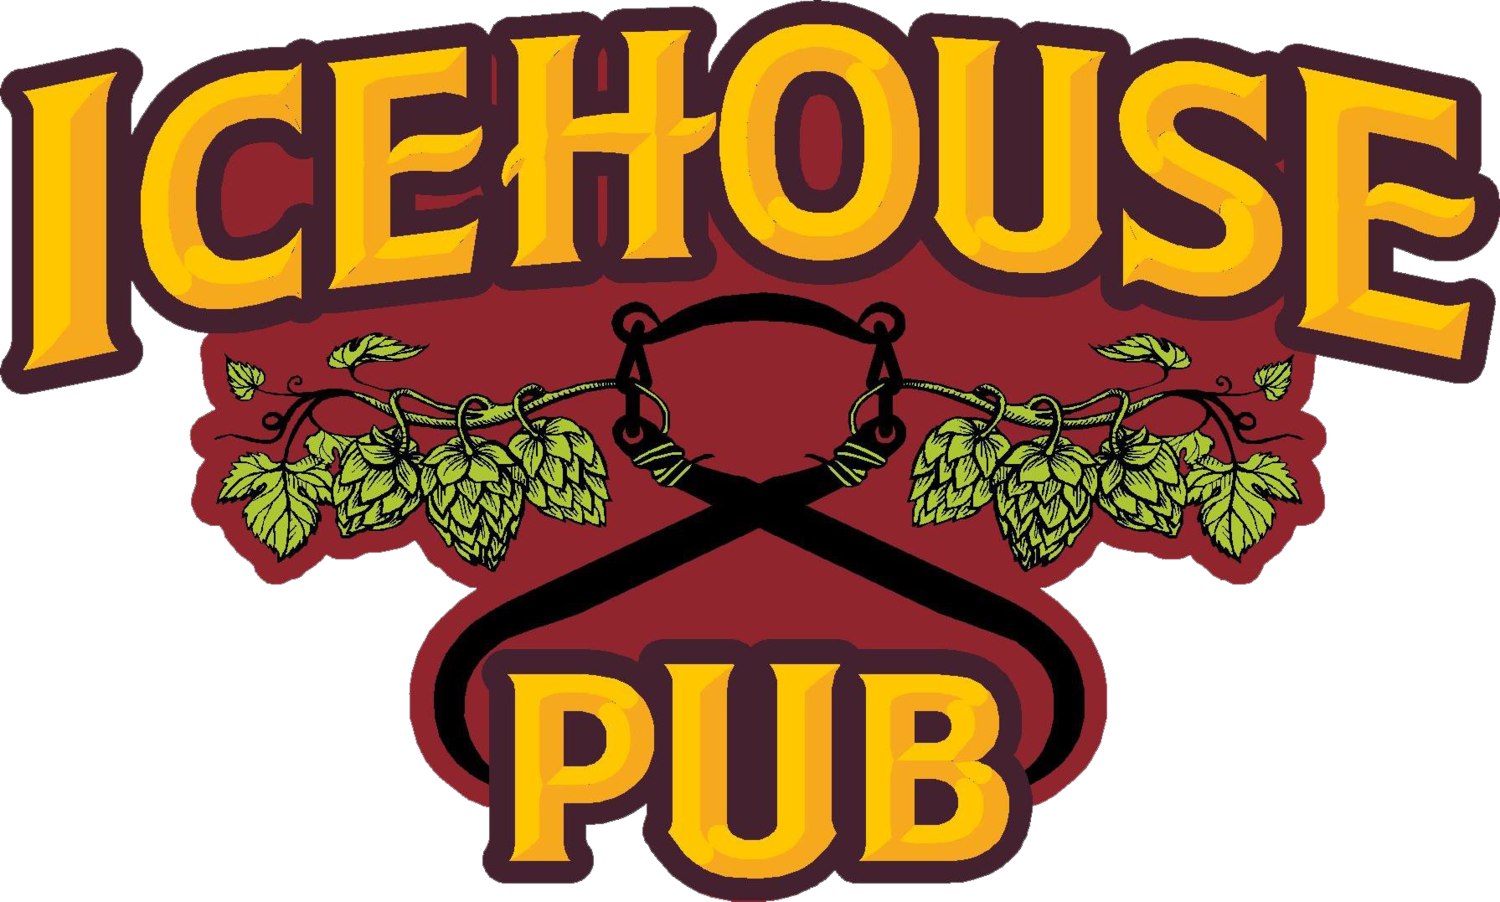 Ice House Pub